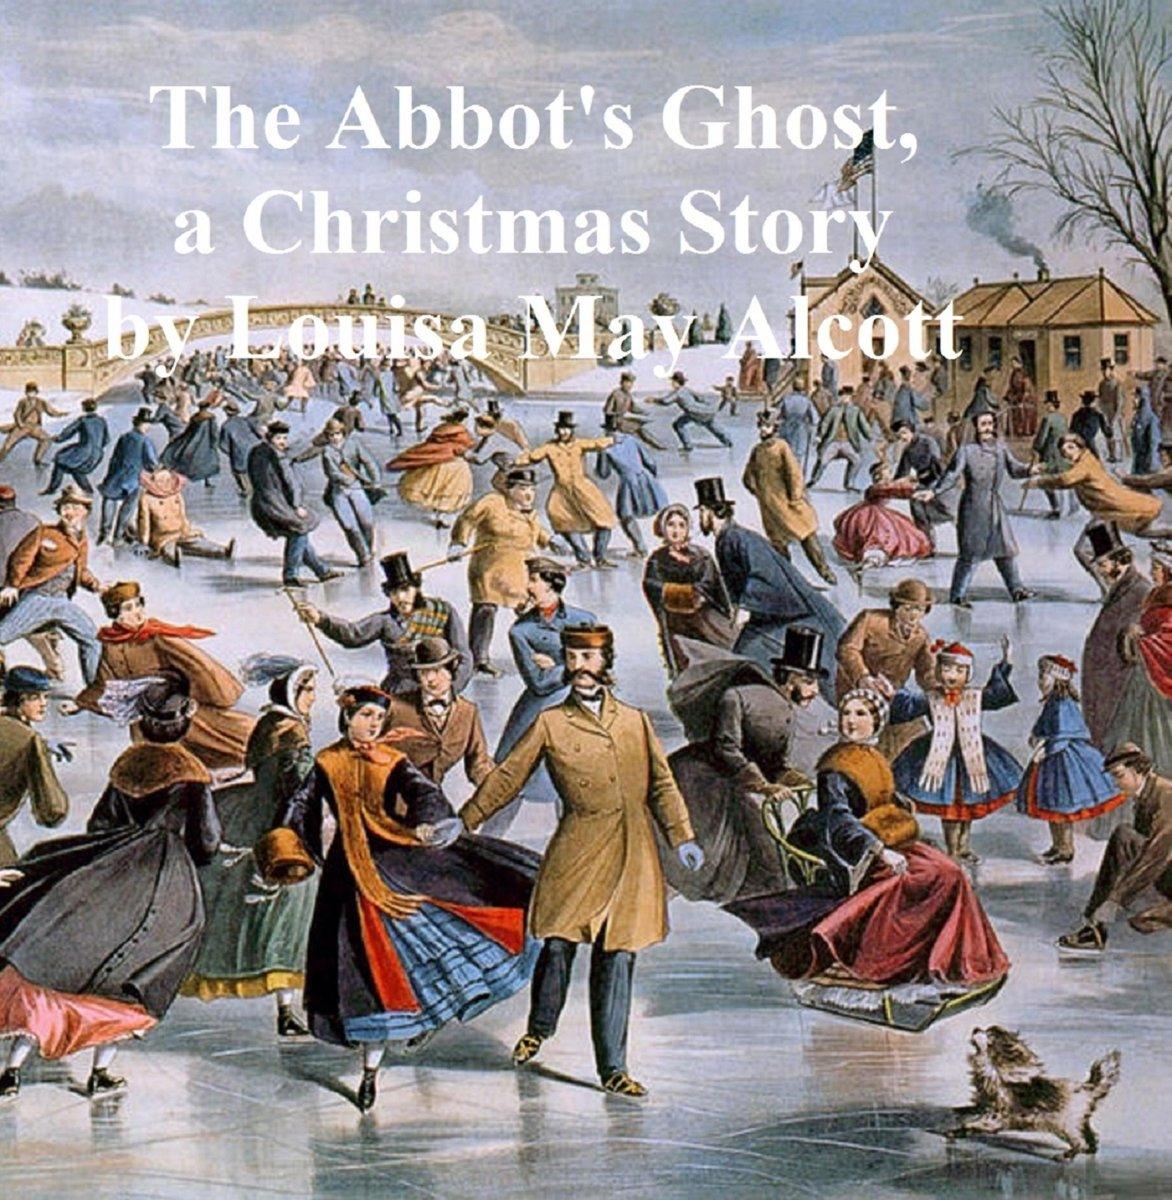 The Abbot's Ghost or Maurice Treherne's Temptation, A Christmas Story